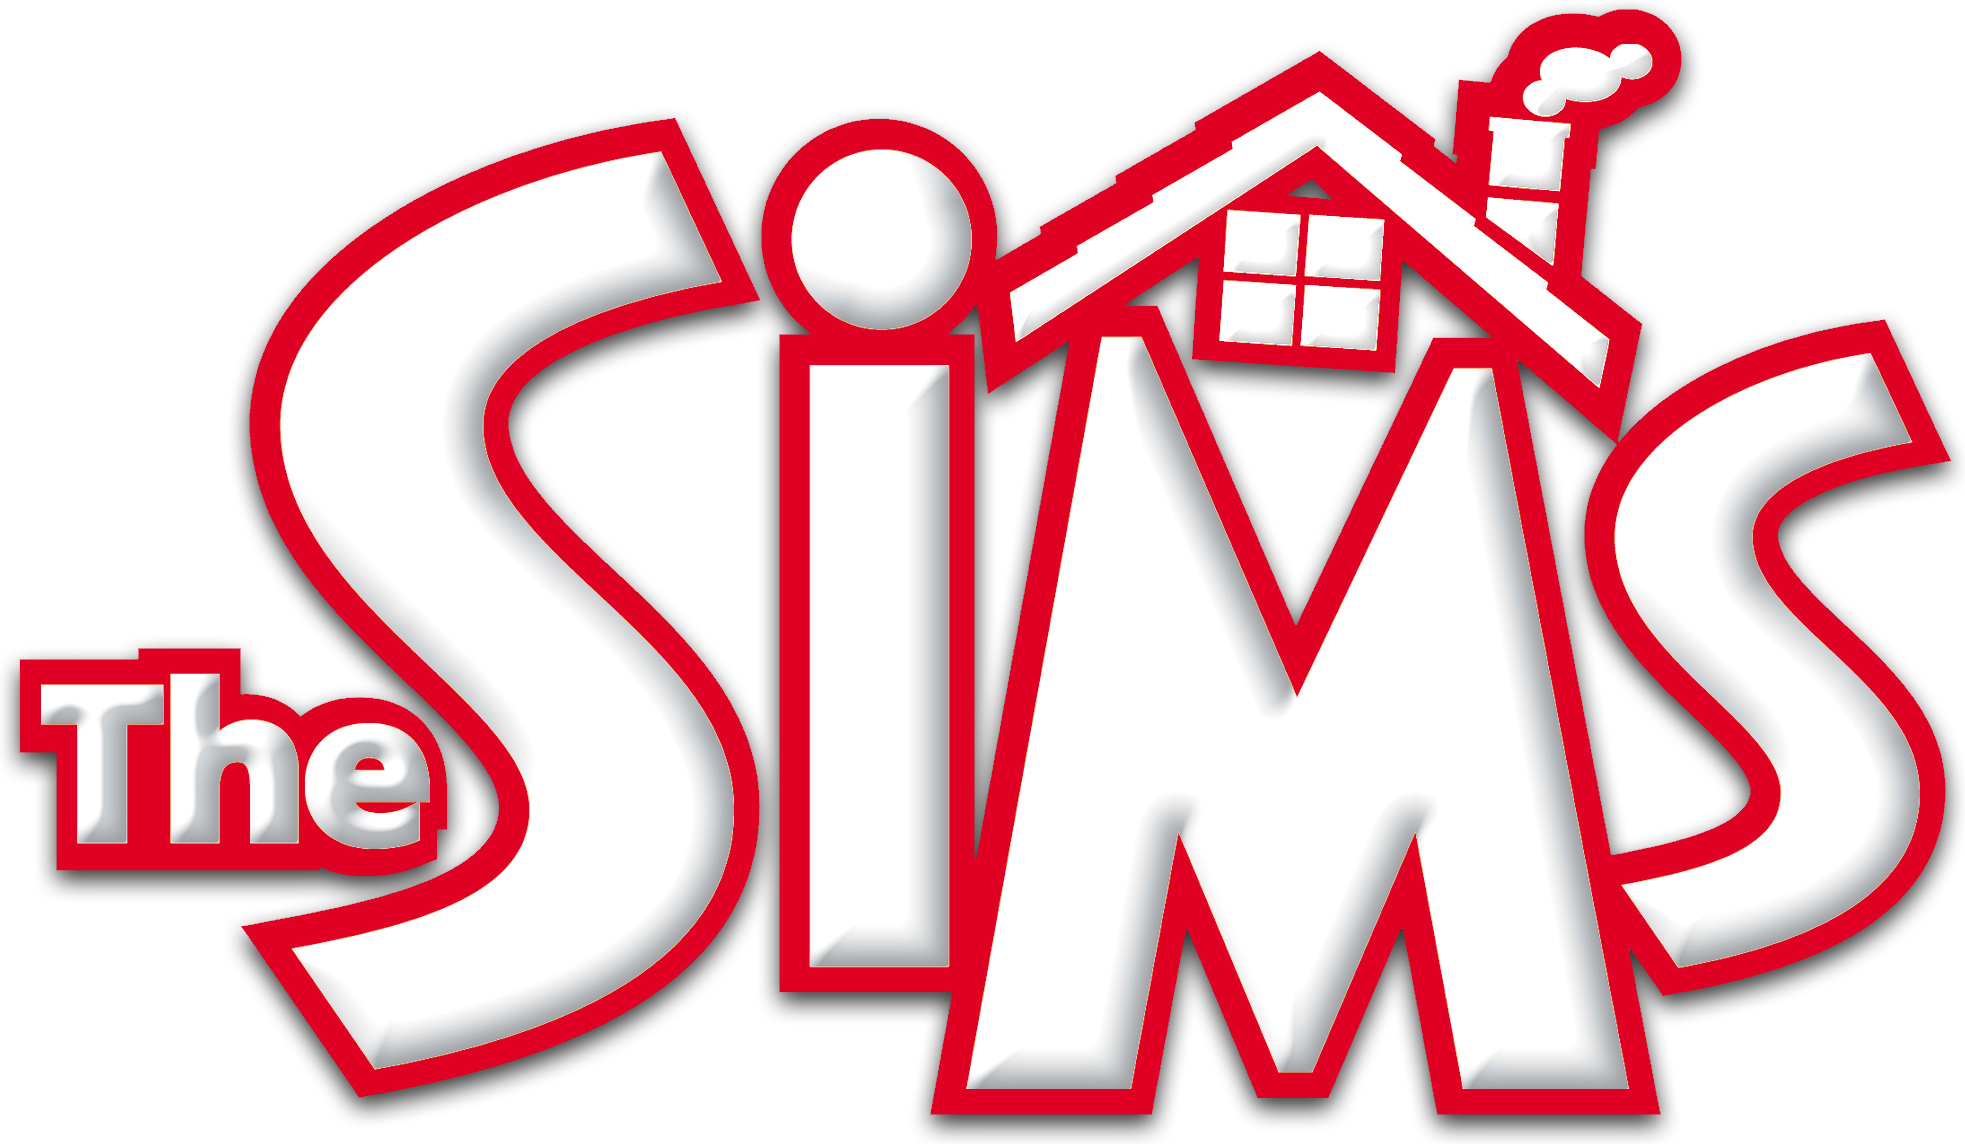 File:The Sims Logo.png